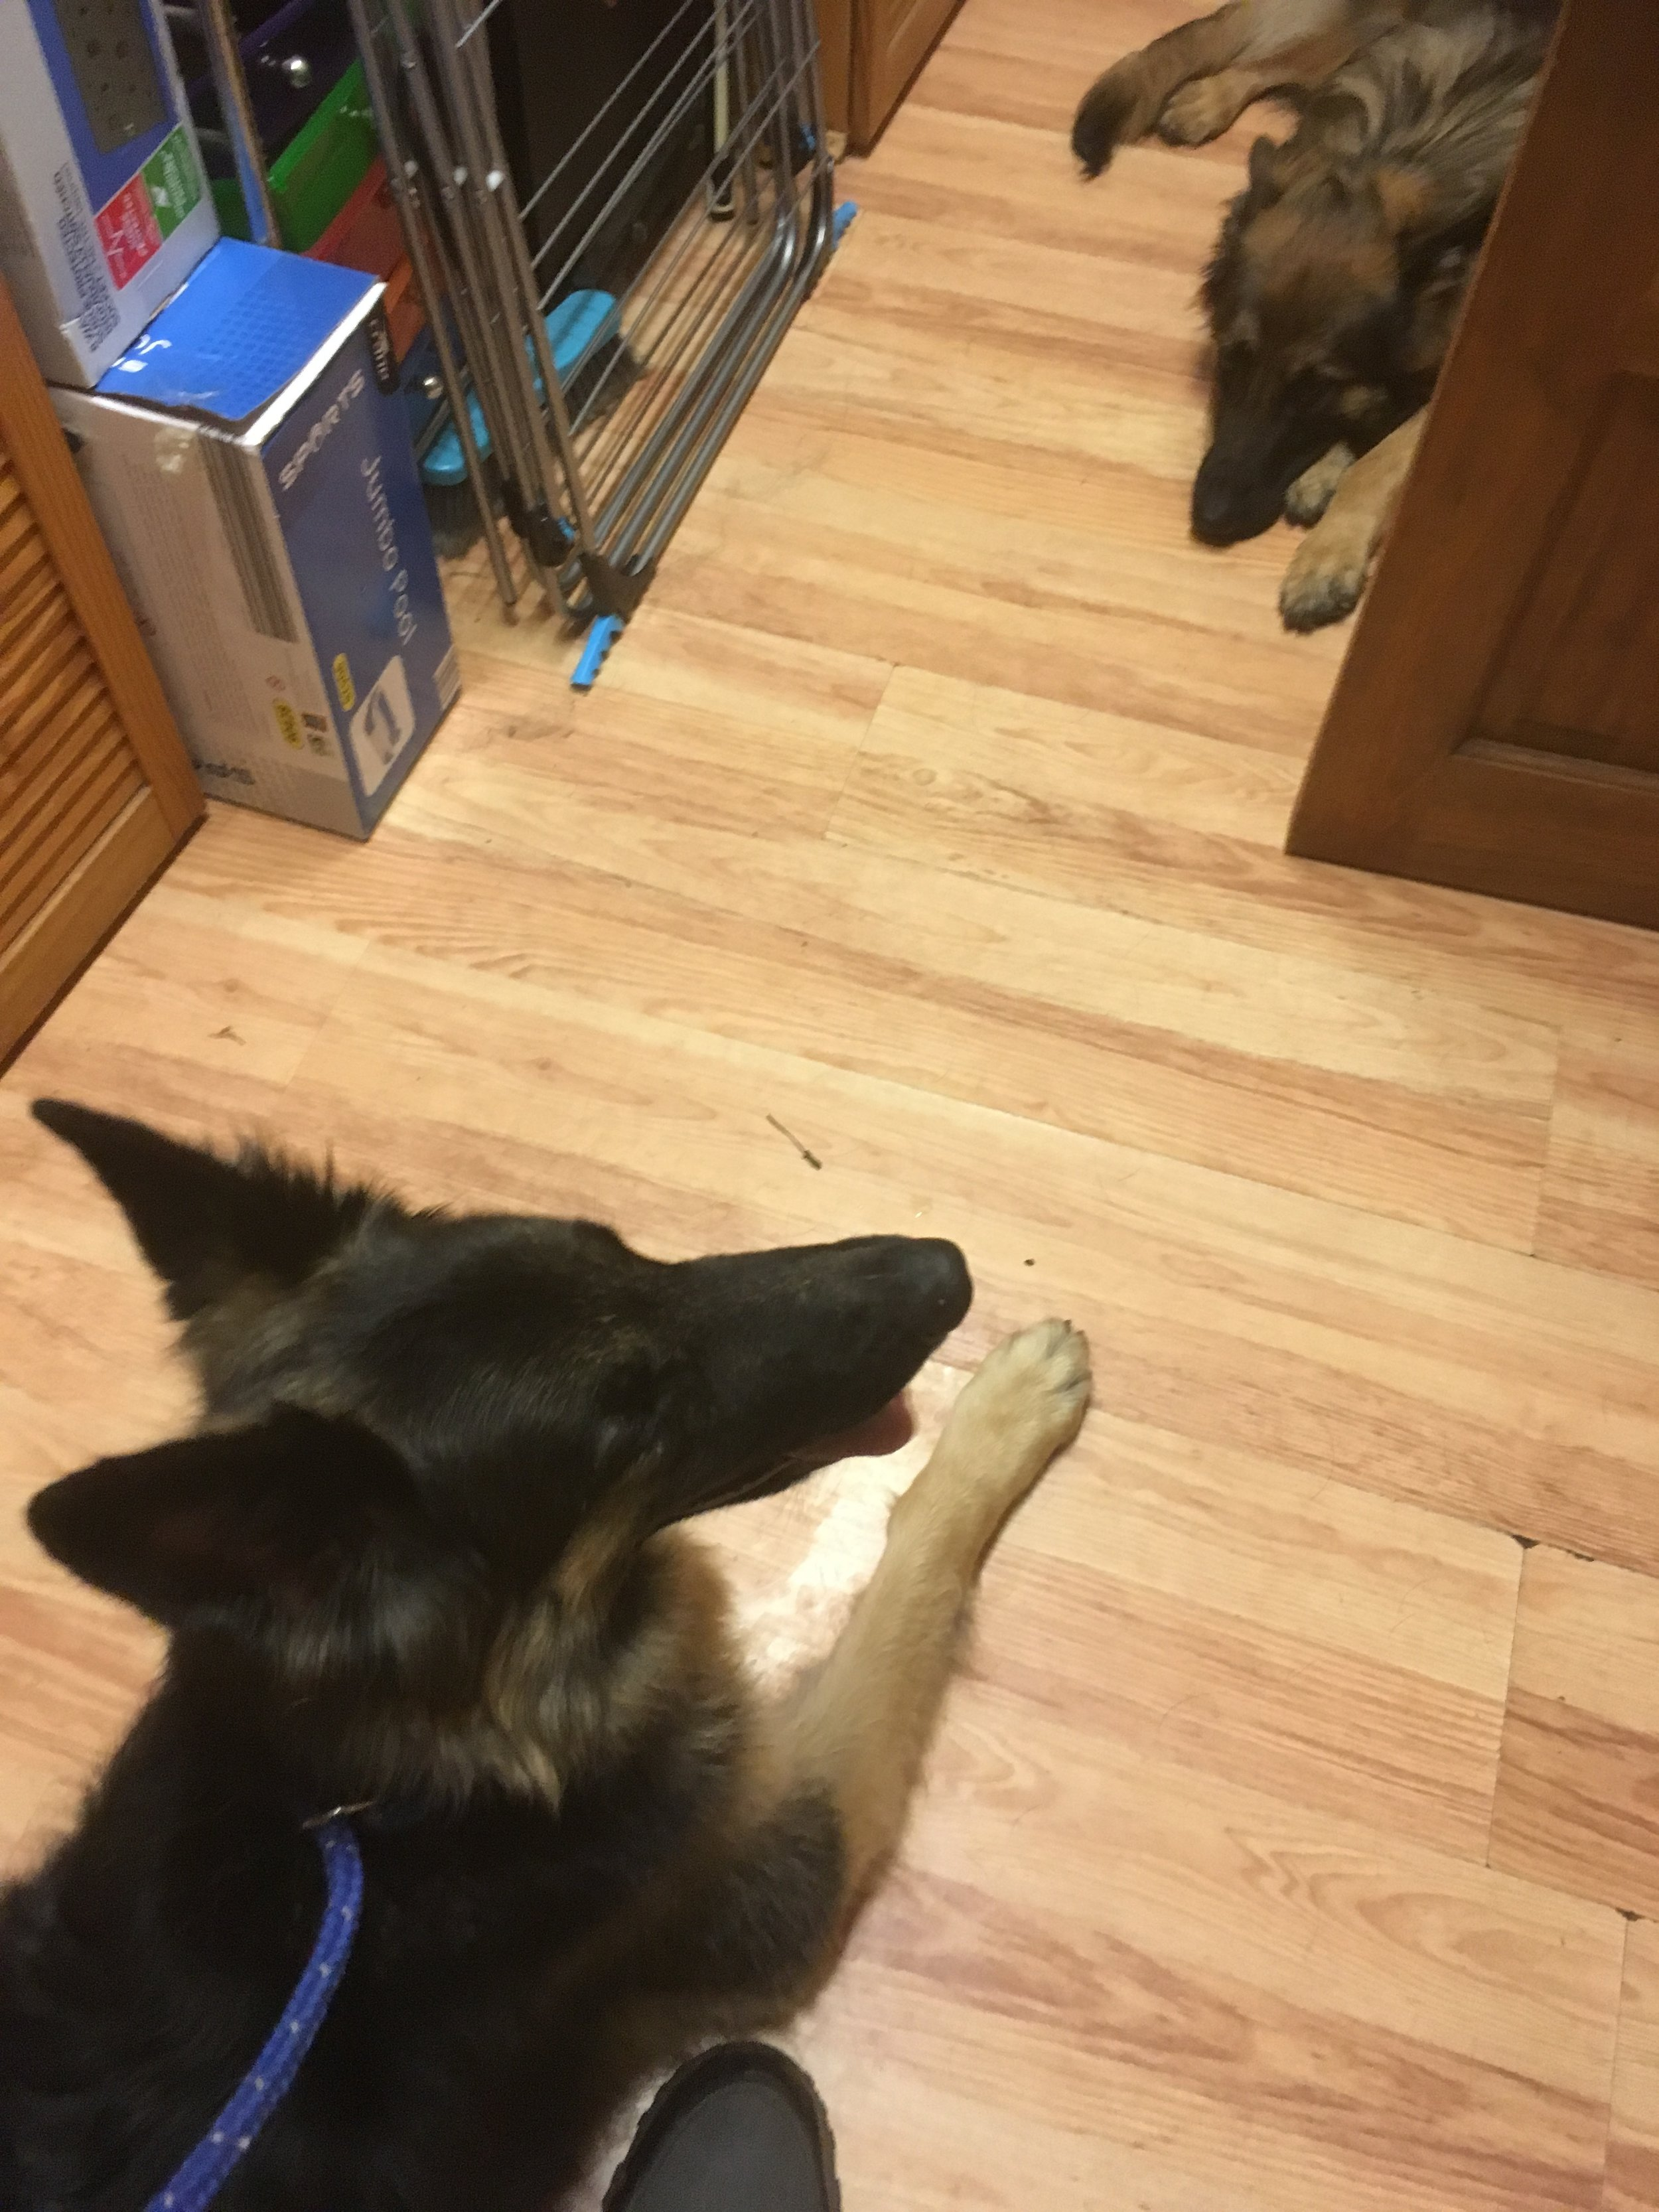 These are the two German shepherd females who need help in getting on together.